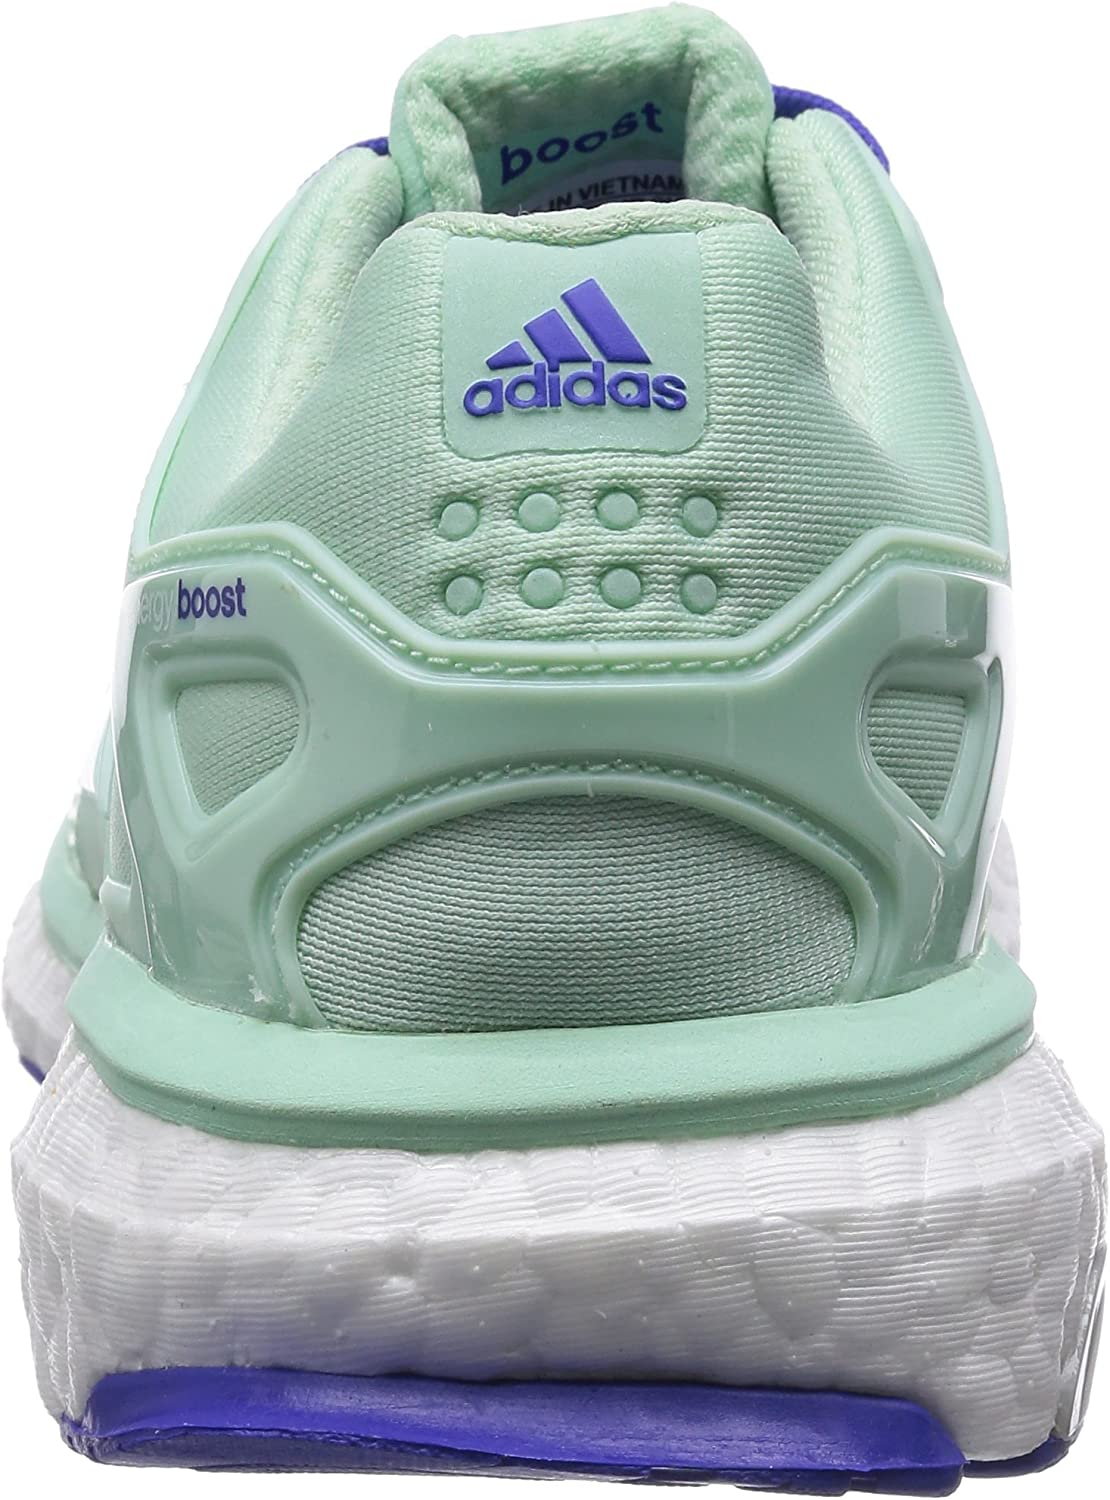 adidas Energy Boost ESM Womens Running Trainers Sneakers